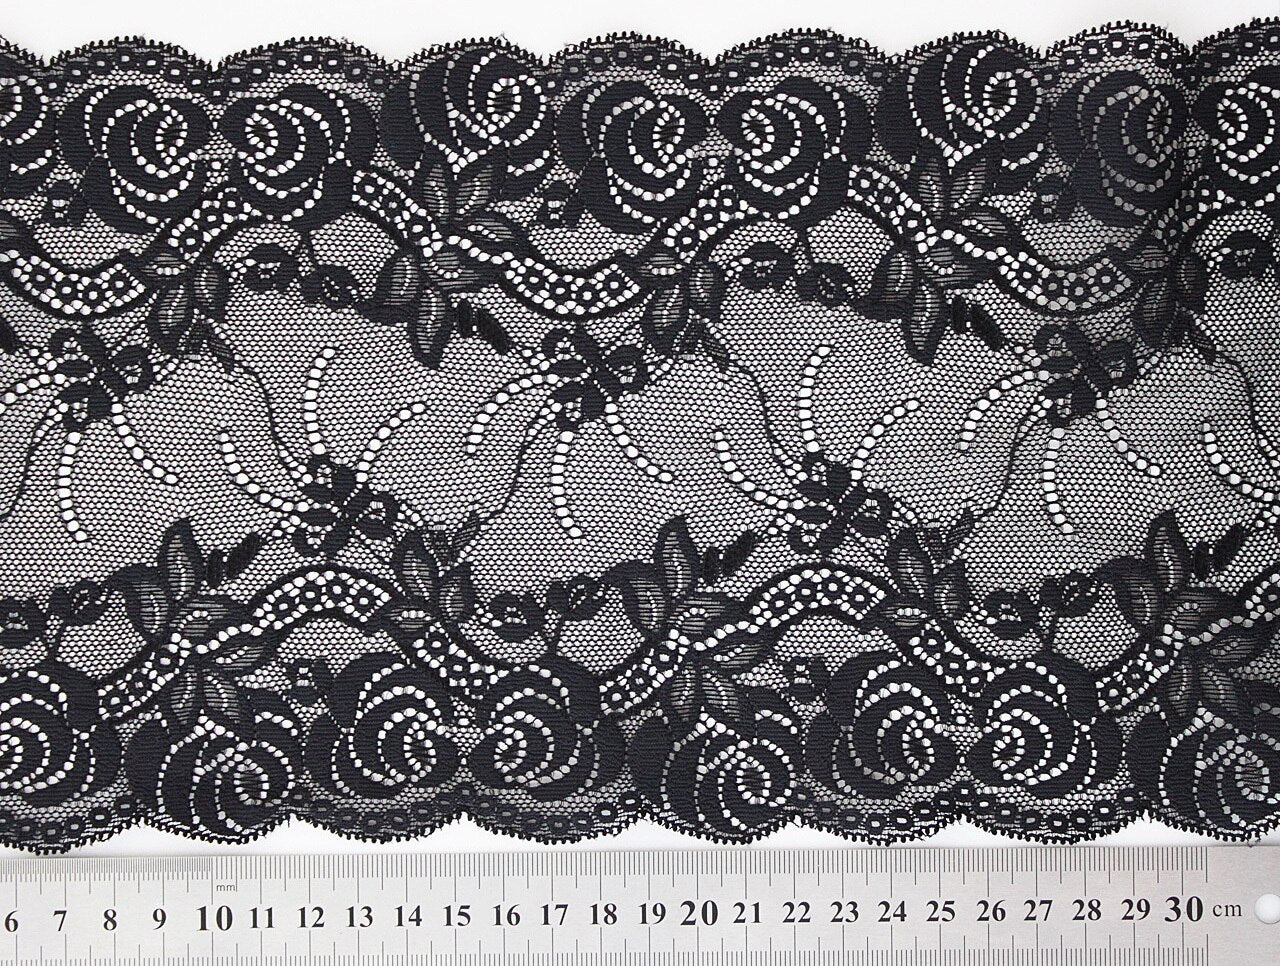 Black Lace 165mm Stretch Trim - $8.00 per metre